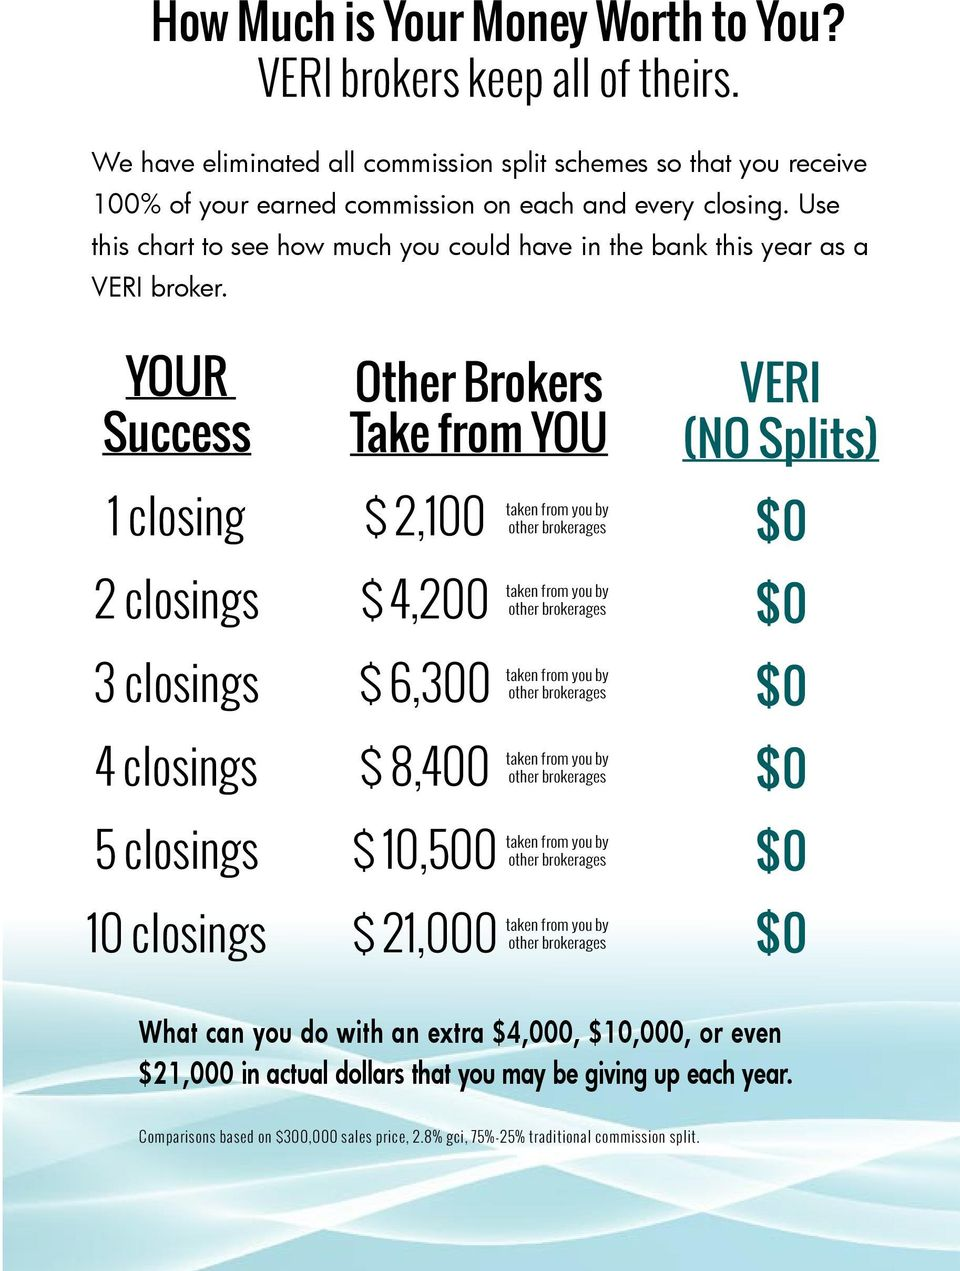 Use this chart to see how much you could have in the bank this year as a VERI broker.